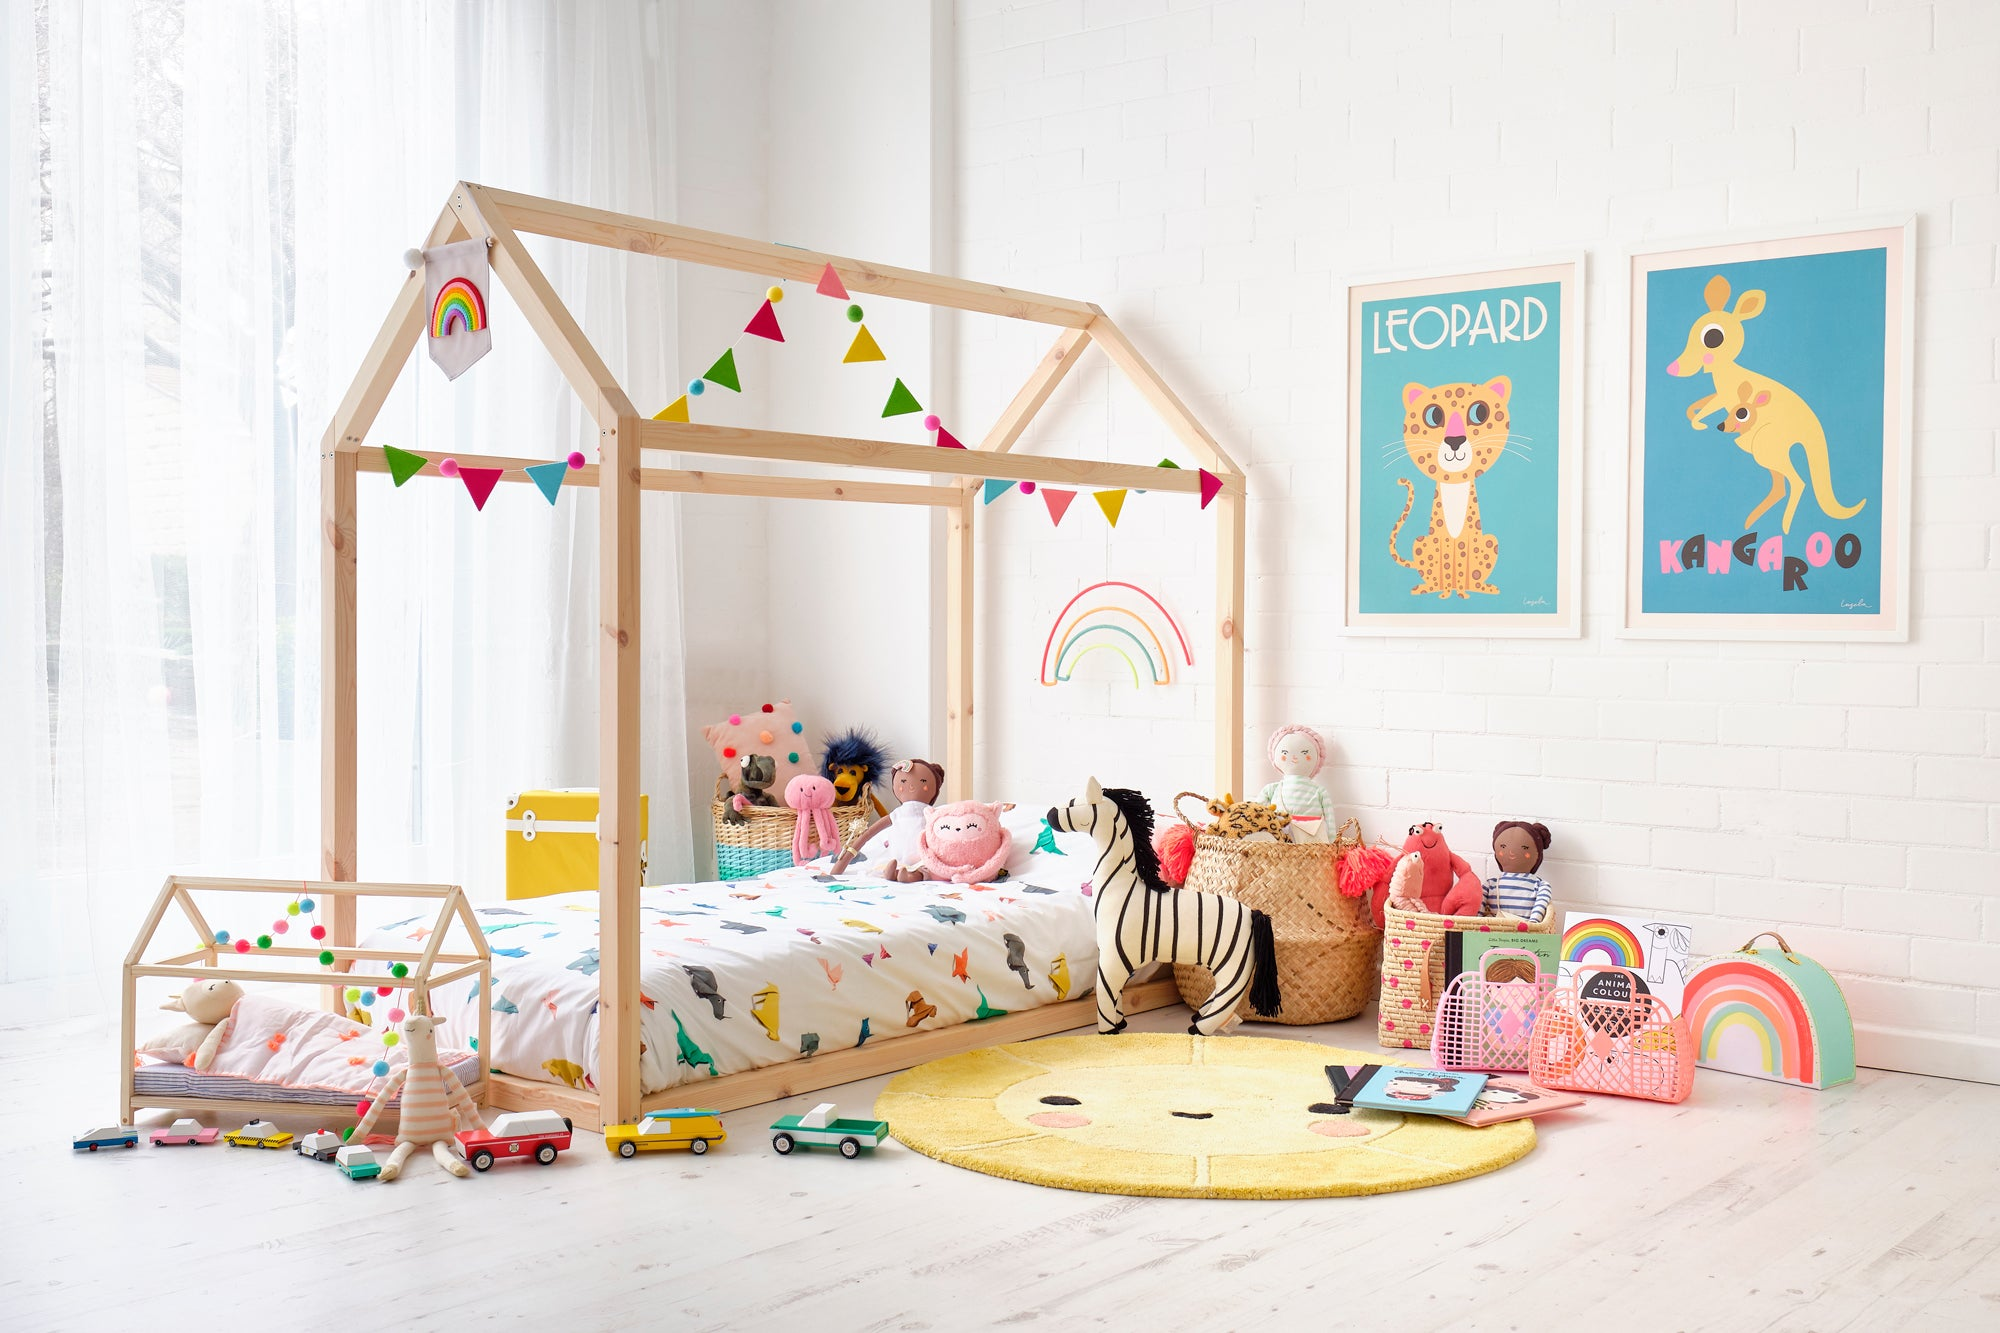 'Rainbow Bright' Children's Bedroom, Toys and Accessories, styled by Bobby Rabbit.